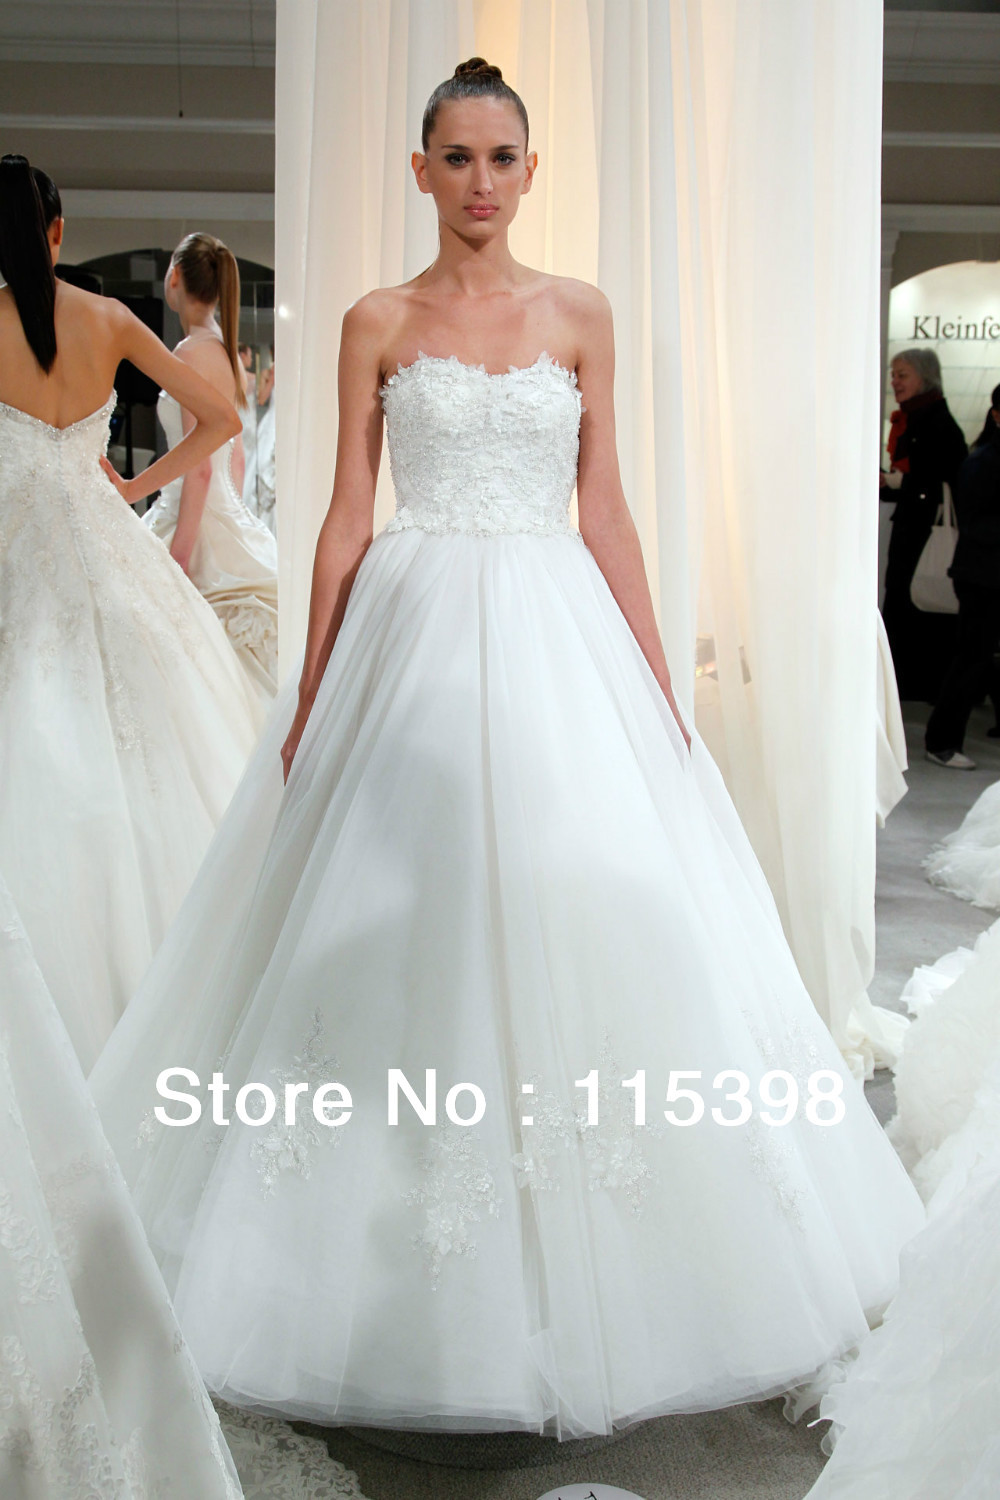 Des17044 simple white tulle strapless ball gown wedding for Wedding dress no train